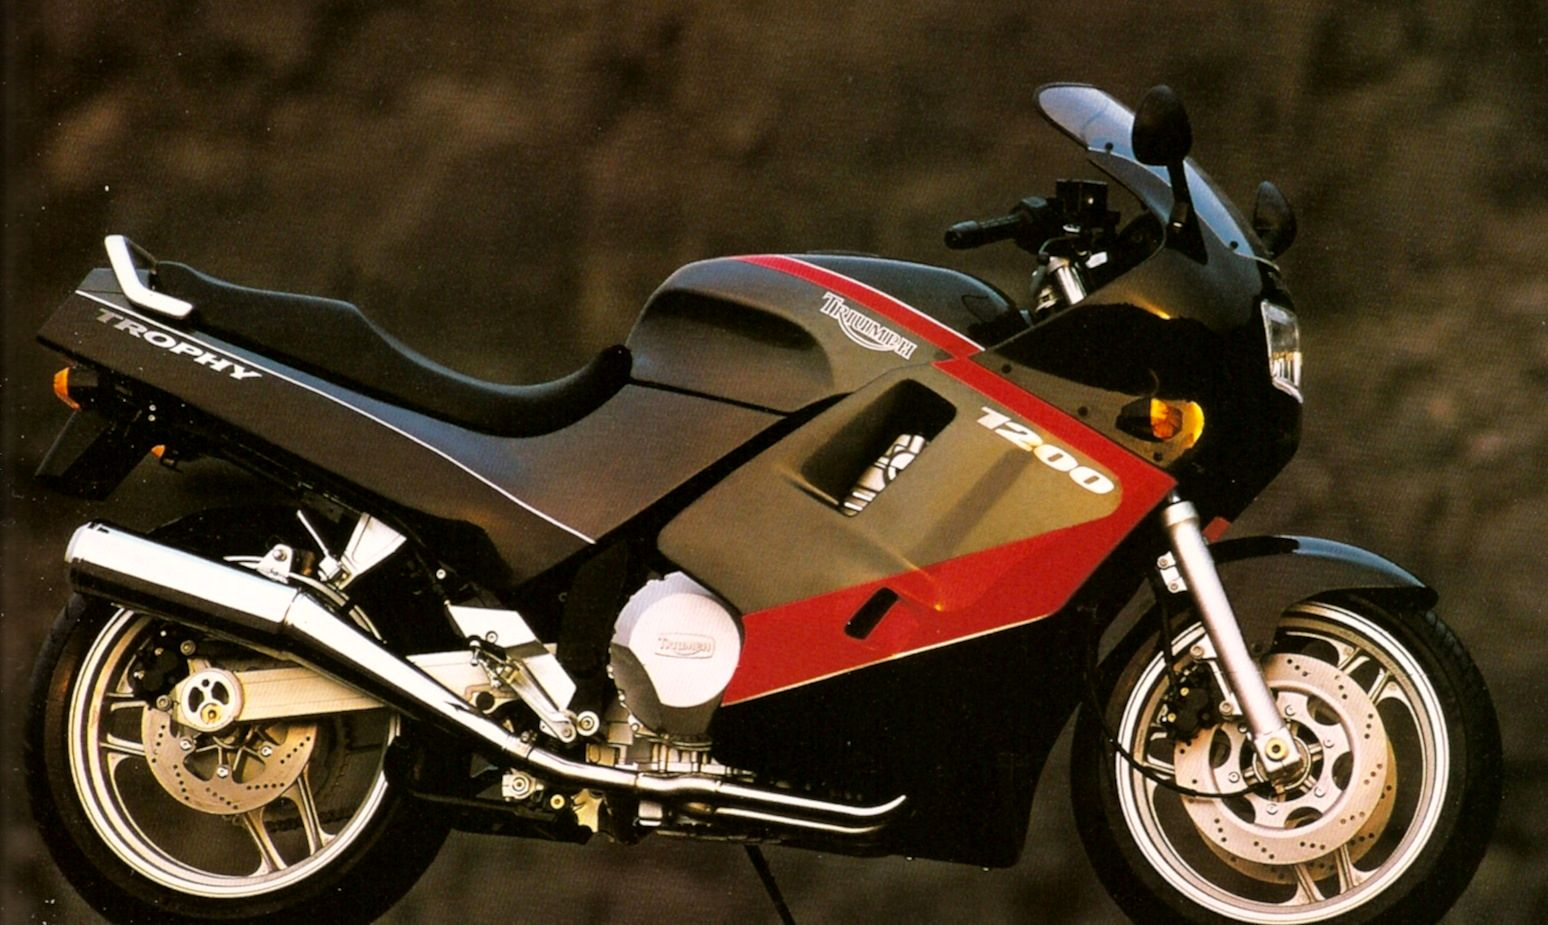 The Trophy 1200 - The face of Triumph in 1991, possibly one of the most '90s pictures going.